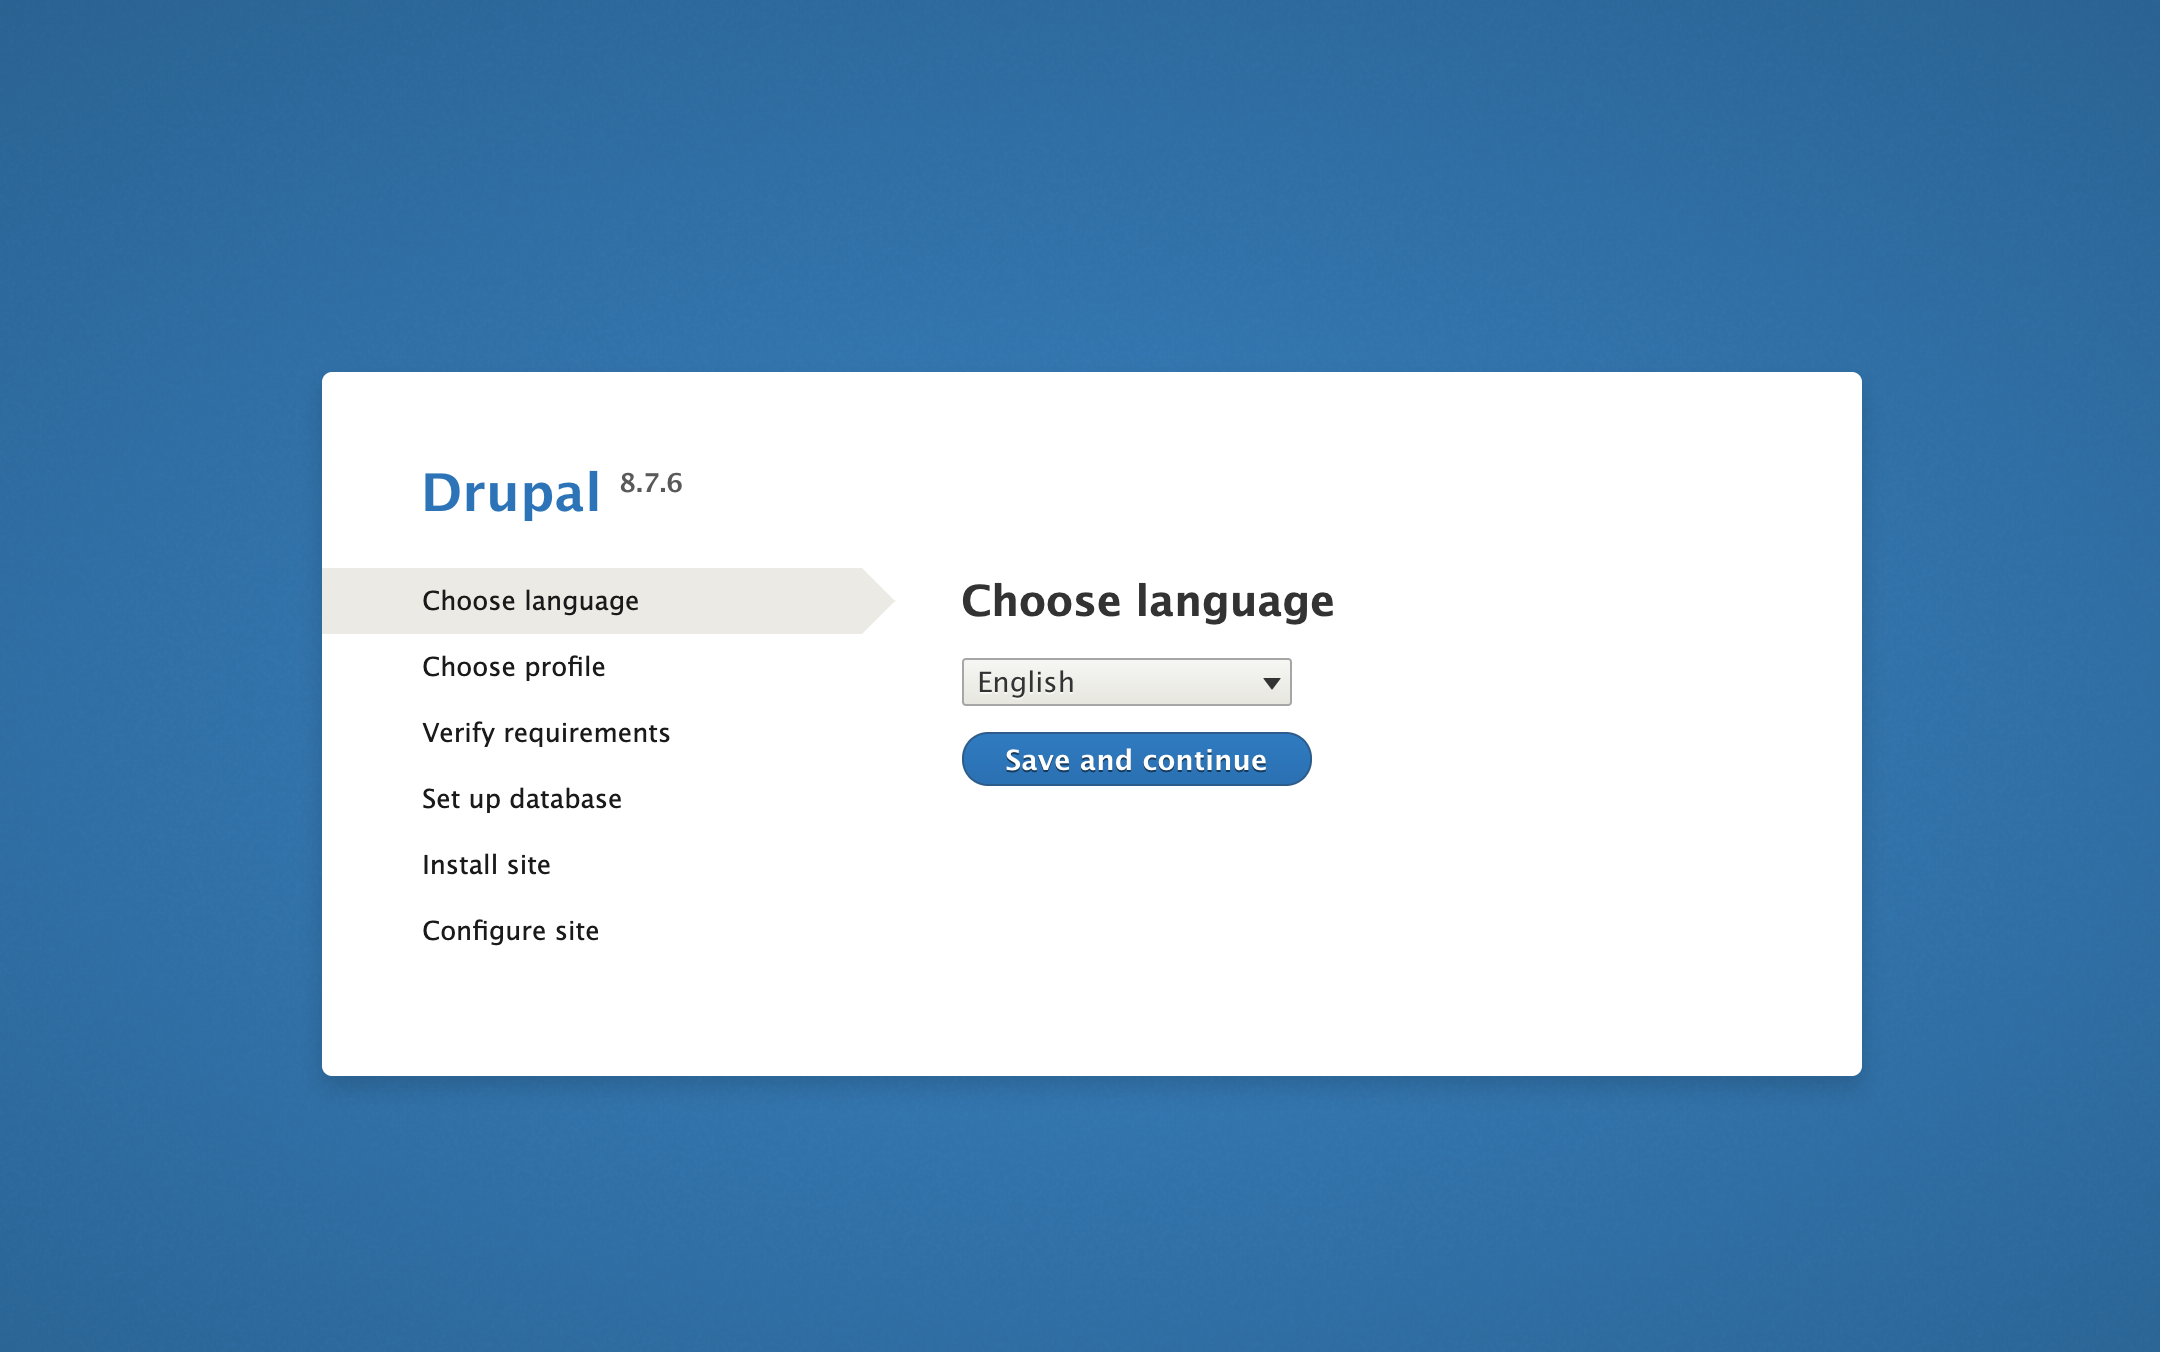 Choose language page on Drupal web interface